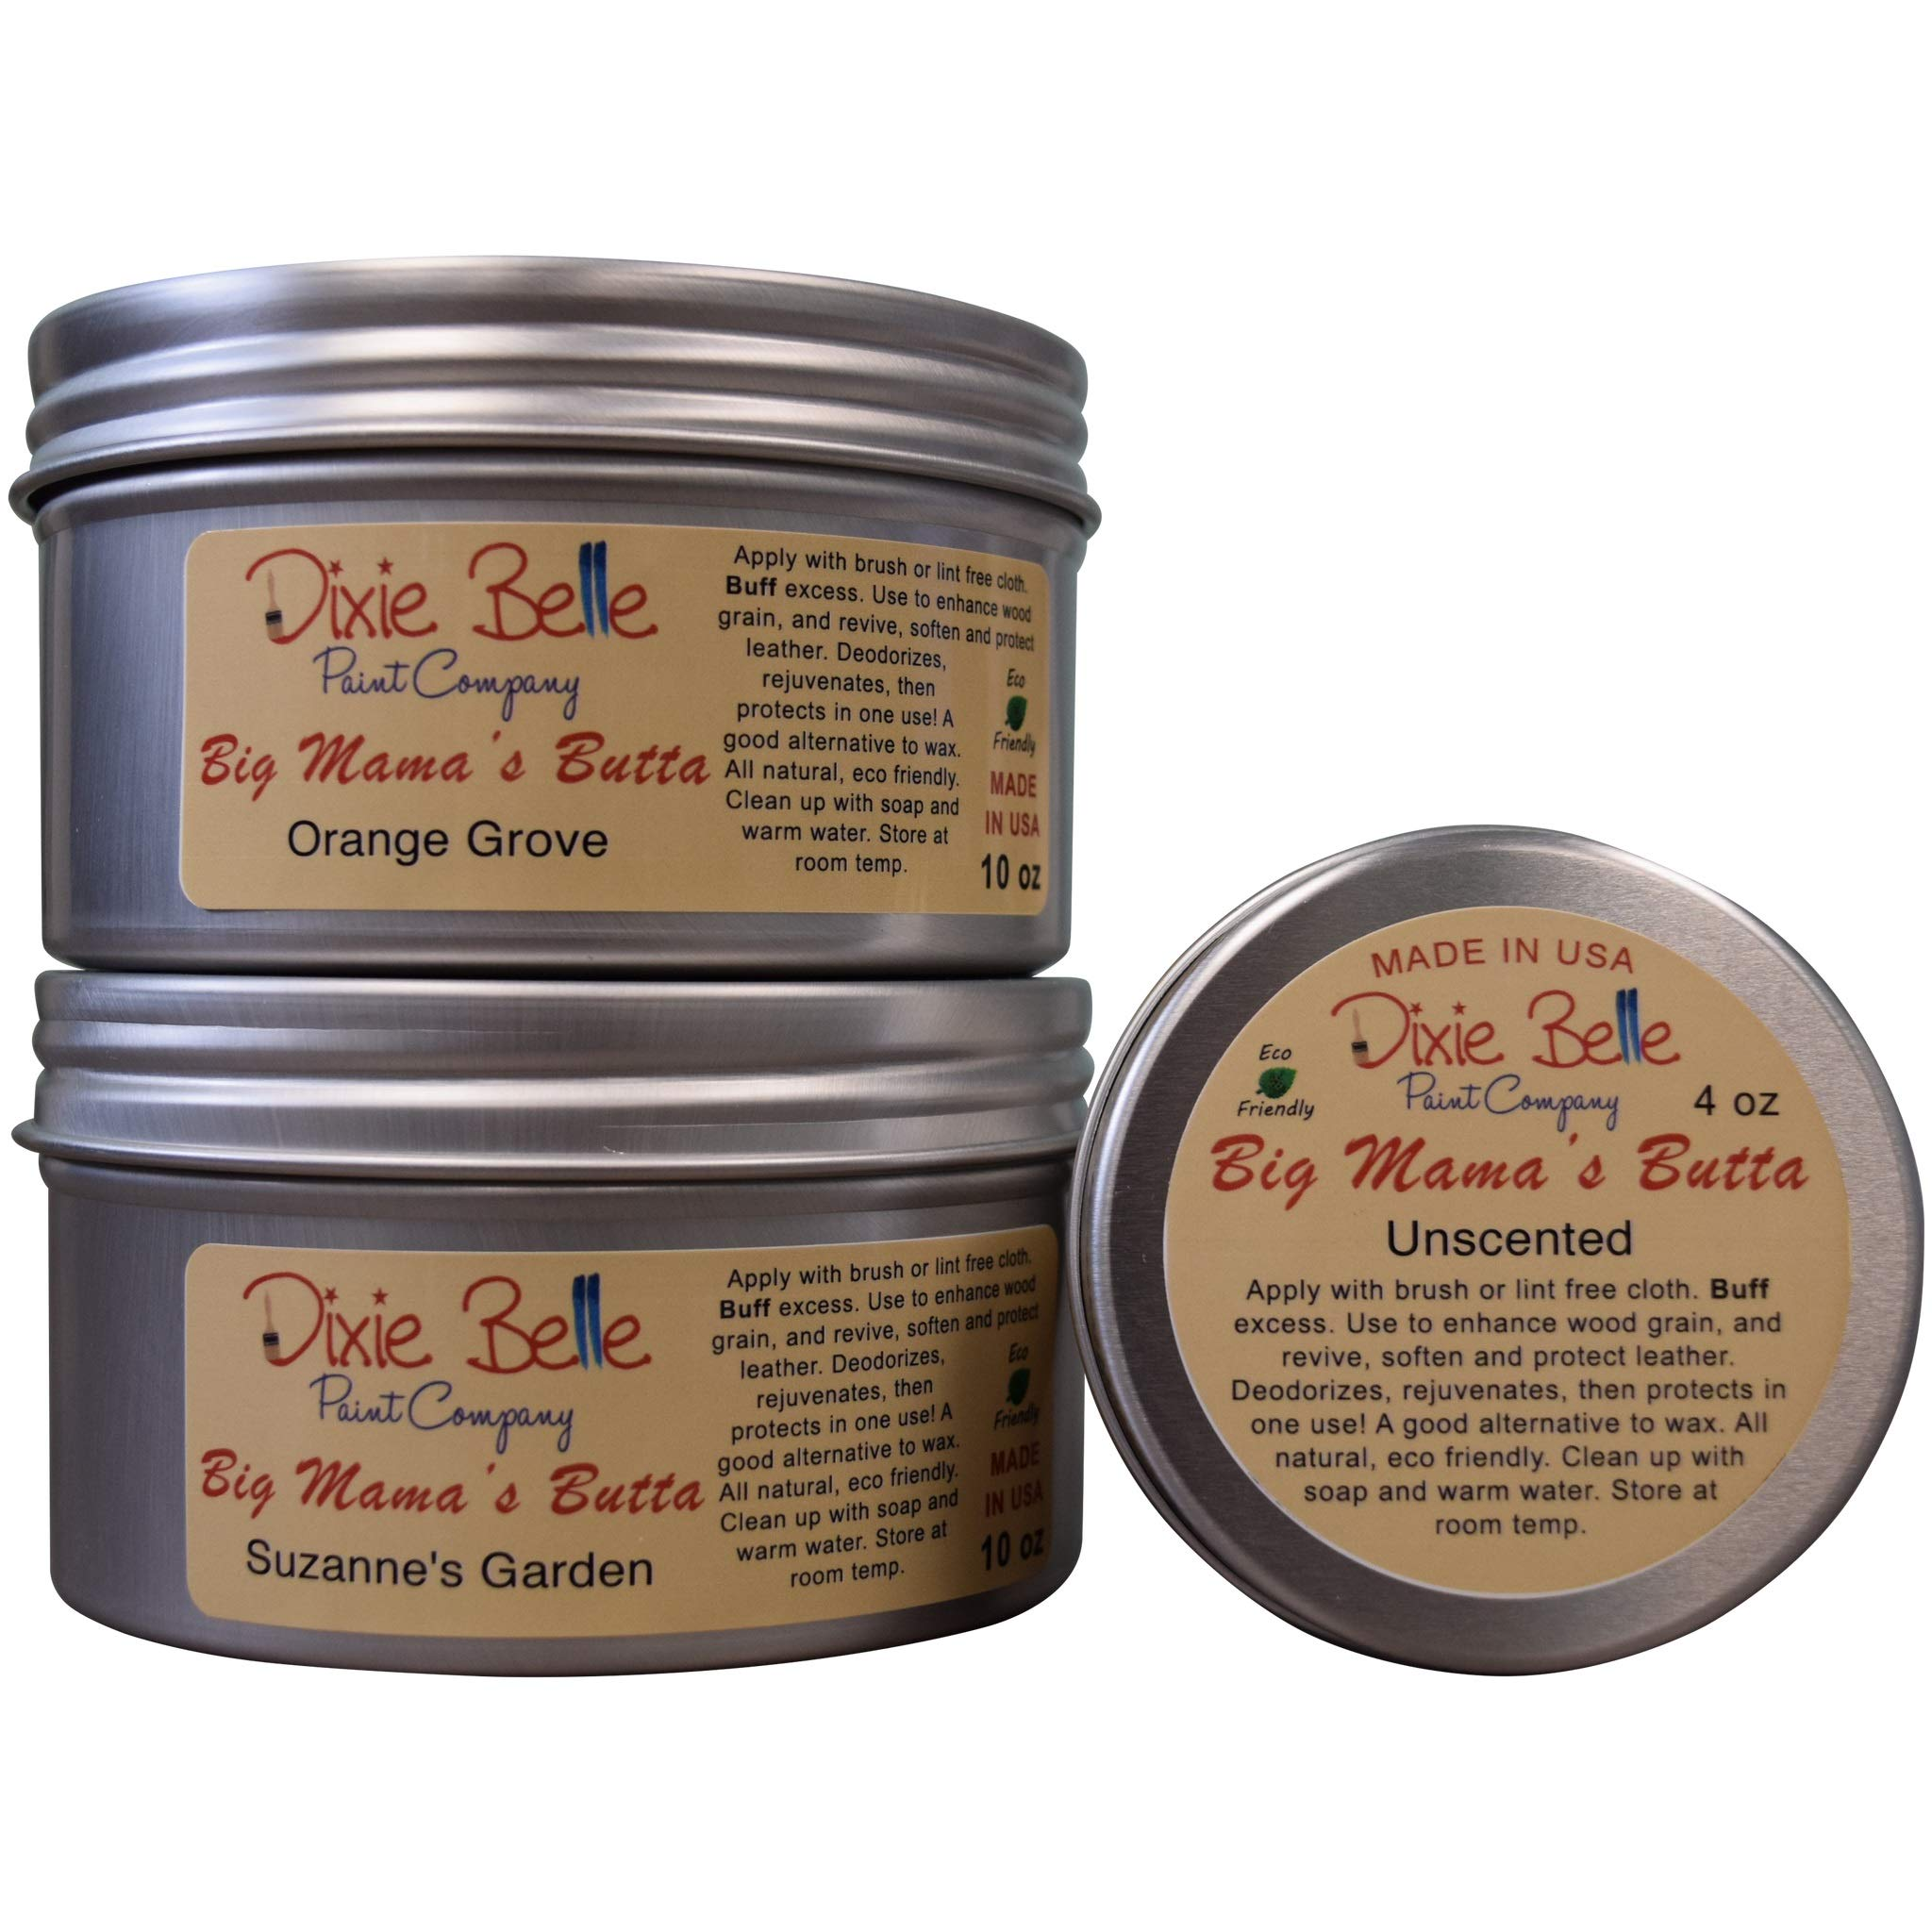 Dixie Belle Paint Company Big Mama's Butta (Suzanne's Garden, 10oz) by Dixie Belle Paint Company